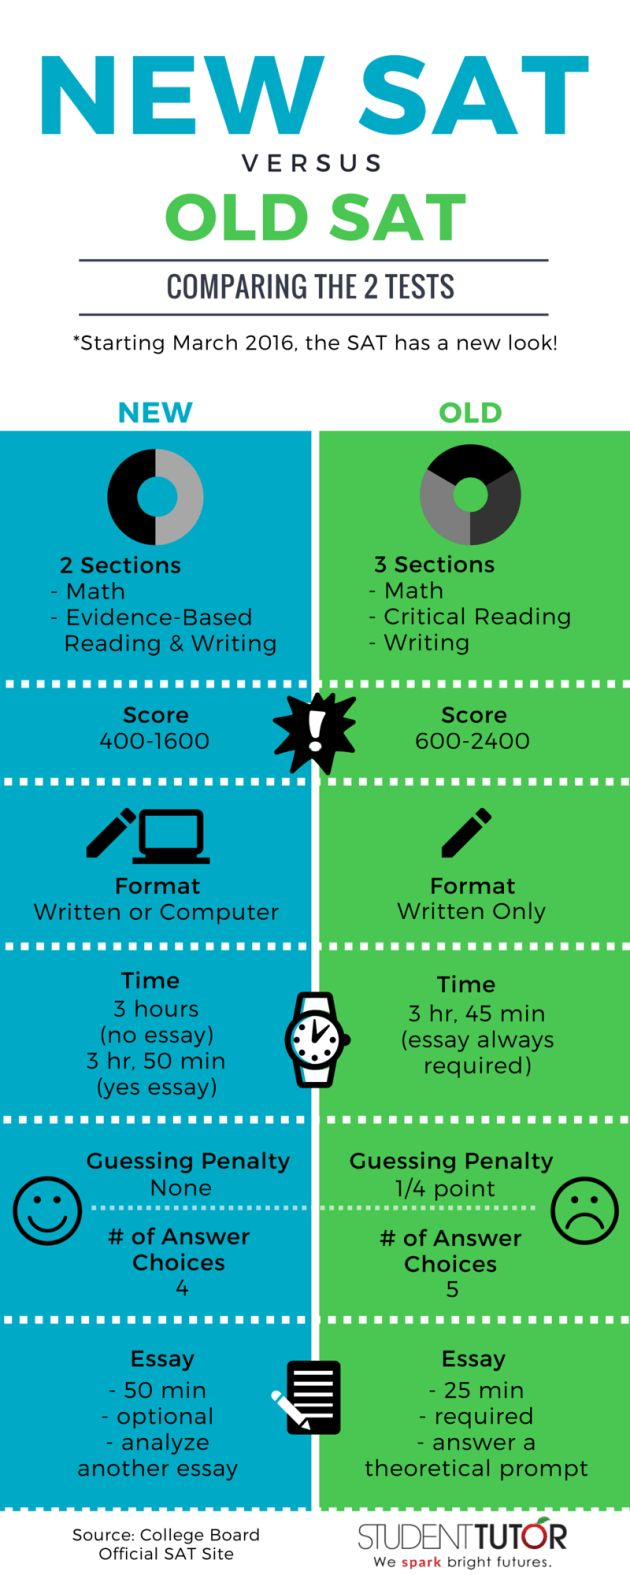 best images about sat test stuff you will see infographics showing most important new sat test changes from old sat valid 2016 and on tutoring test prep and more to help you score high